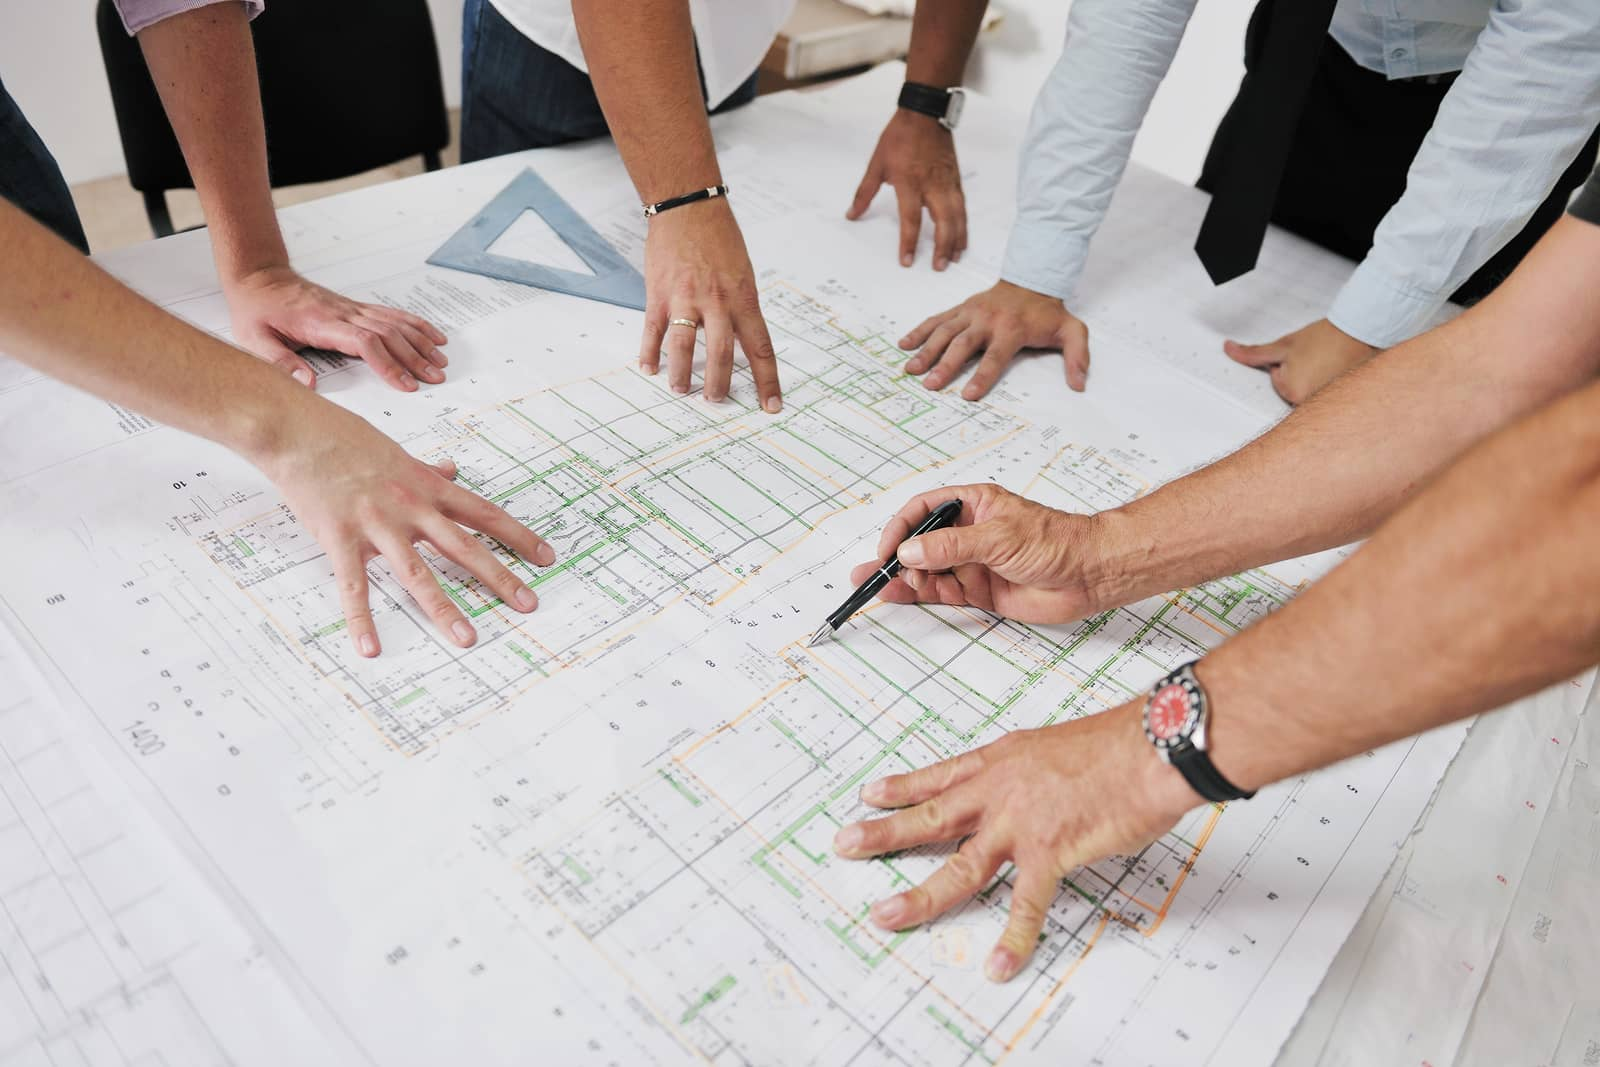 8 Questions to Ask Your Architect